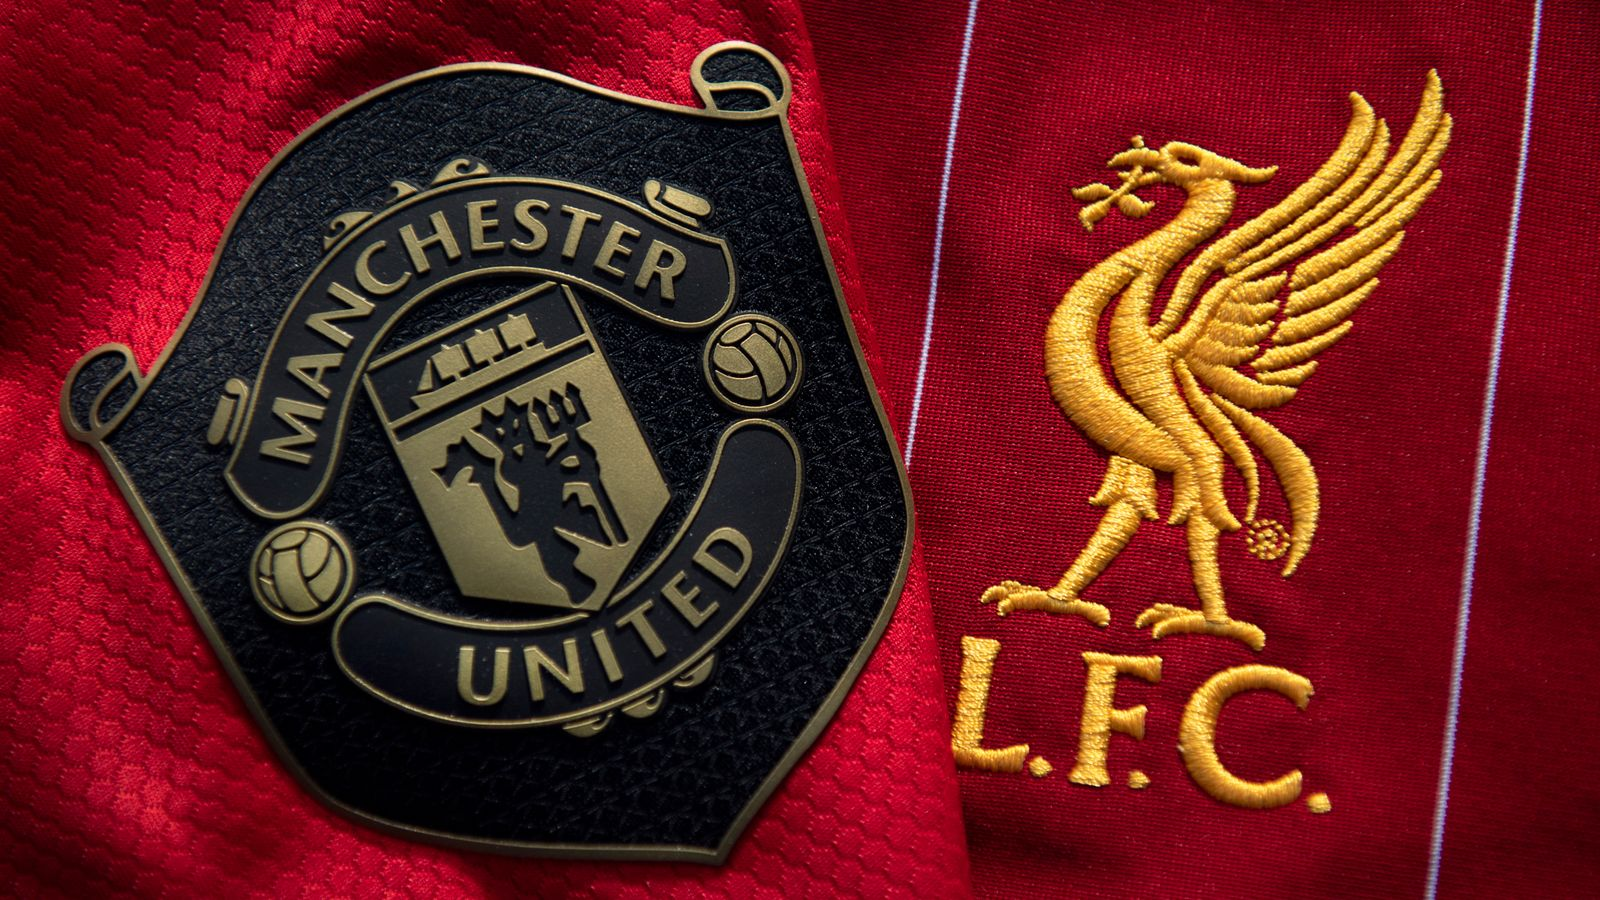 Manchester United a Liverpool FC